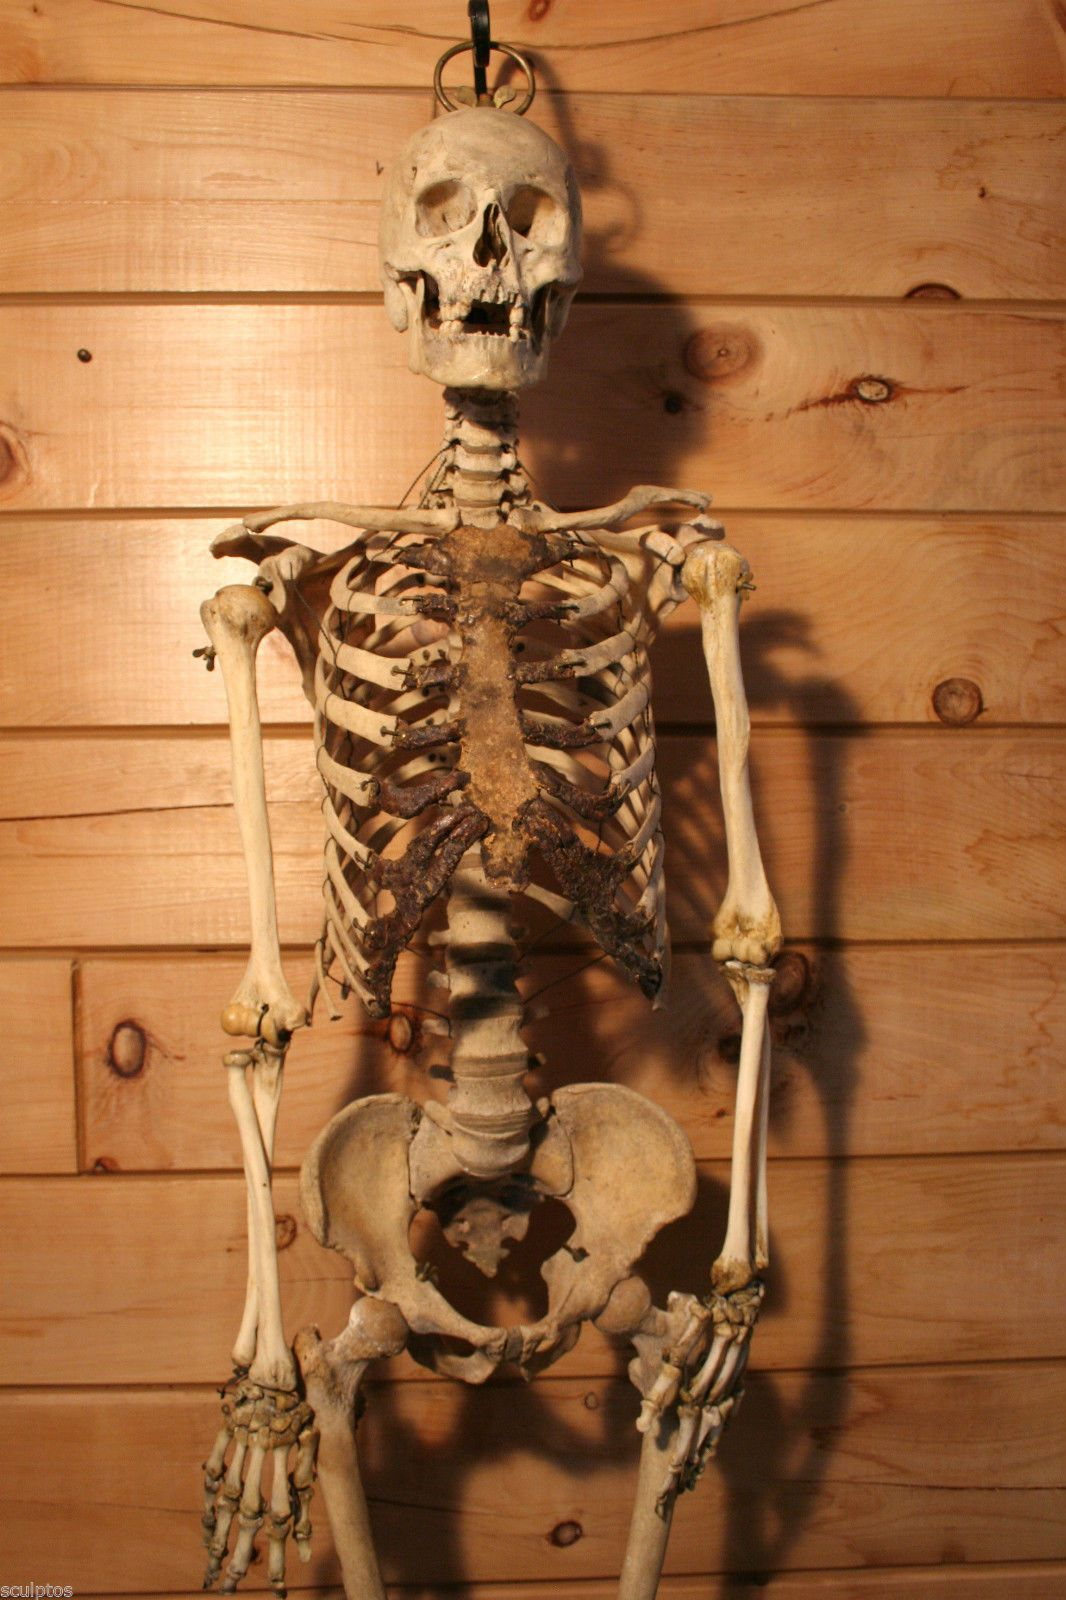 Real Human Adult Male Skeleton Skull Antique Oddity For Scientific